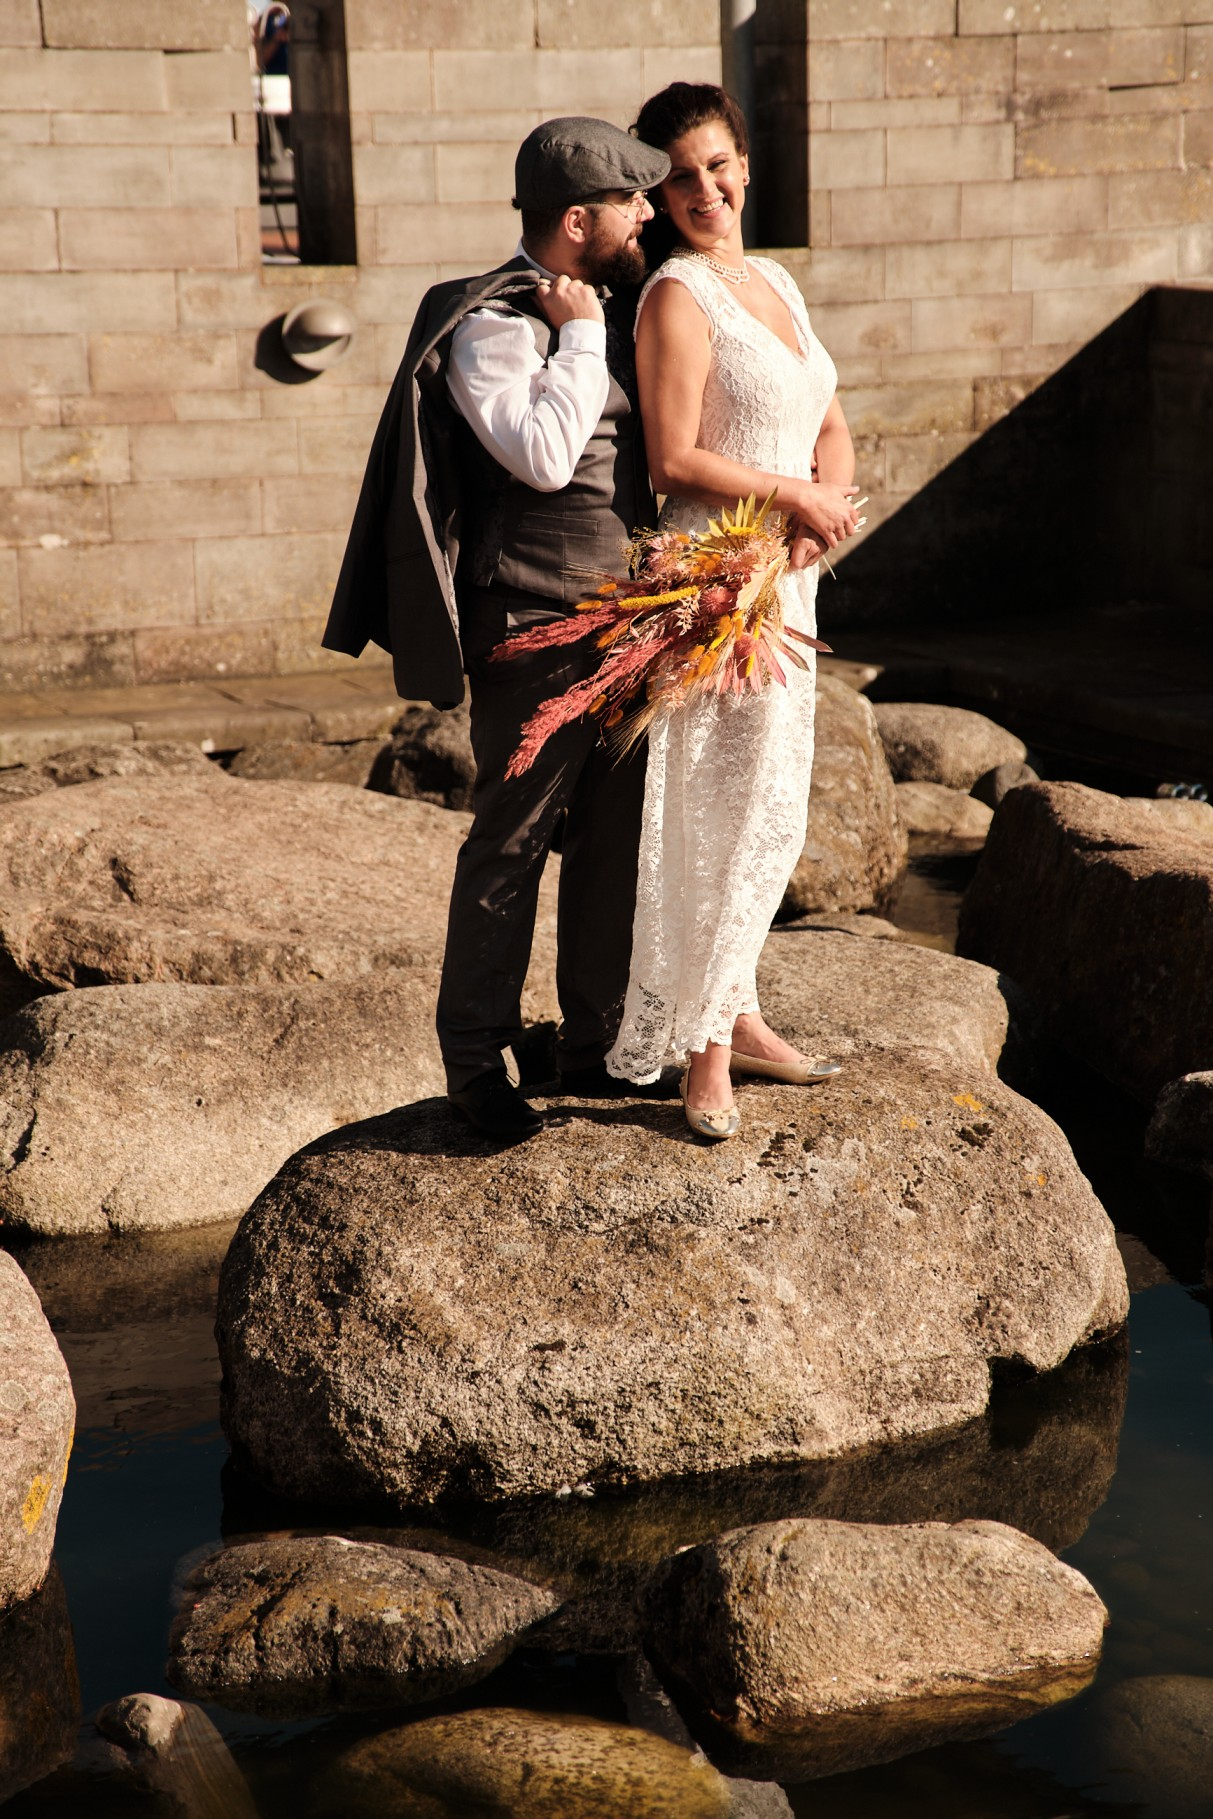 city elopement- cardiff bay wedding- wales elopement- urban elopement - cardiff wedding - colourful summer wedding- couple standing on rocks